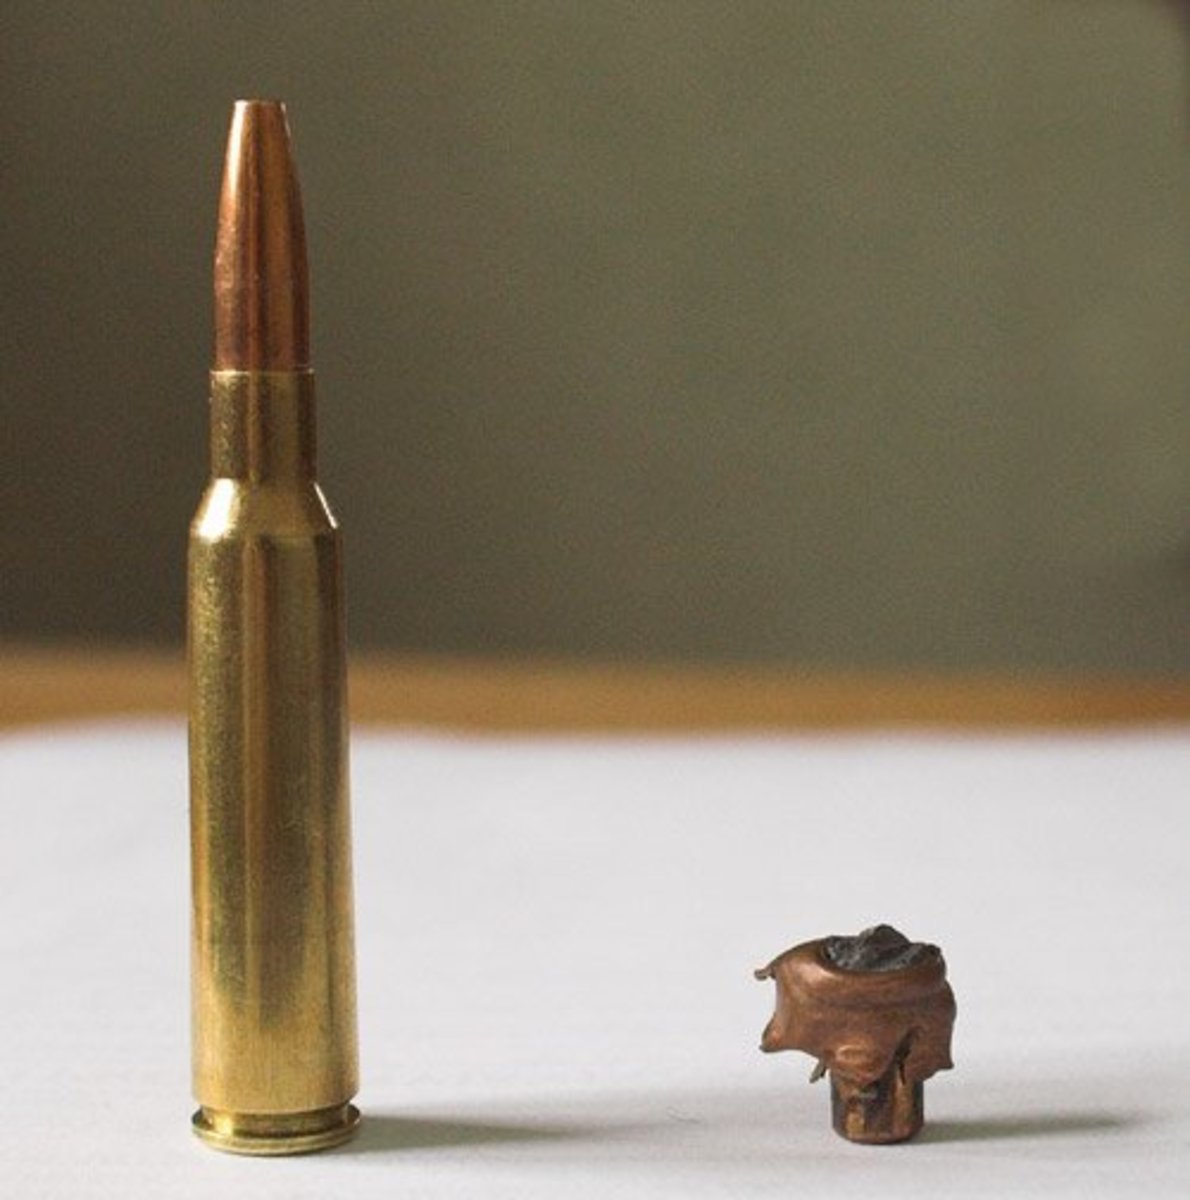 6.5mm progenitor: the 6.5x55 Swedish with bullet recovered from a moose.